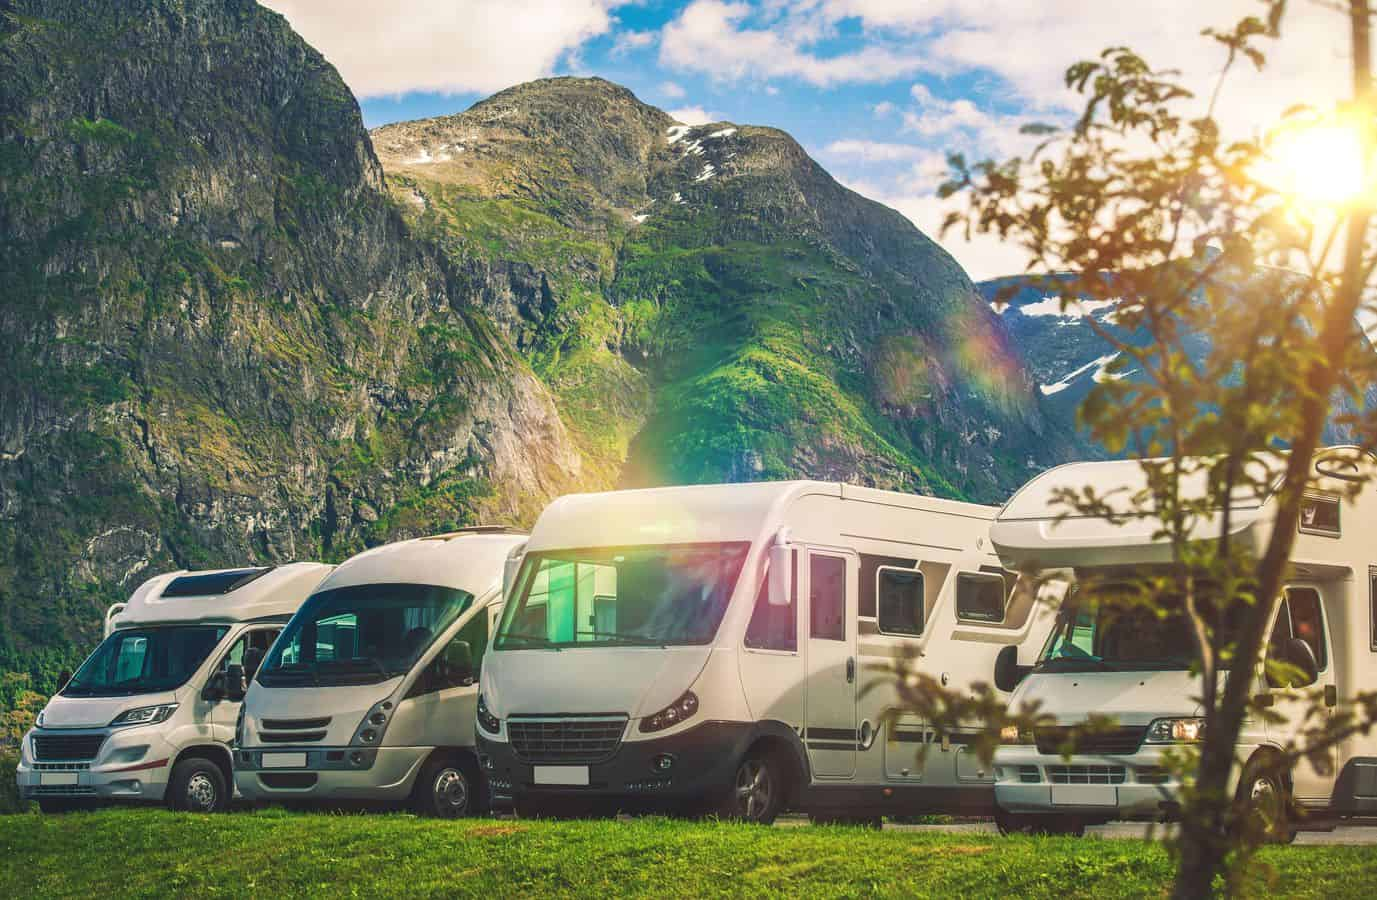 Most Popular Motorhome Models in the UK